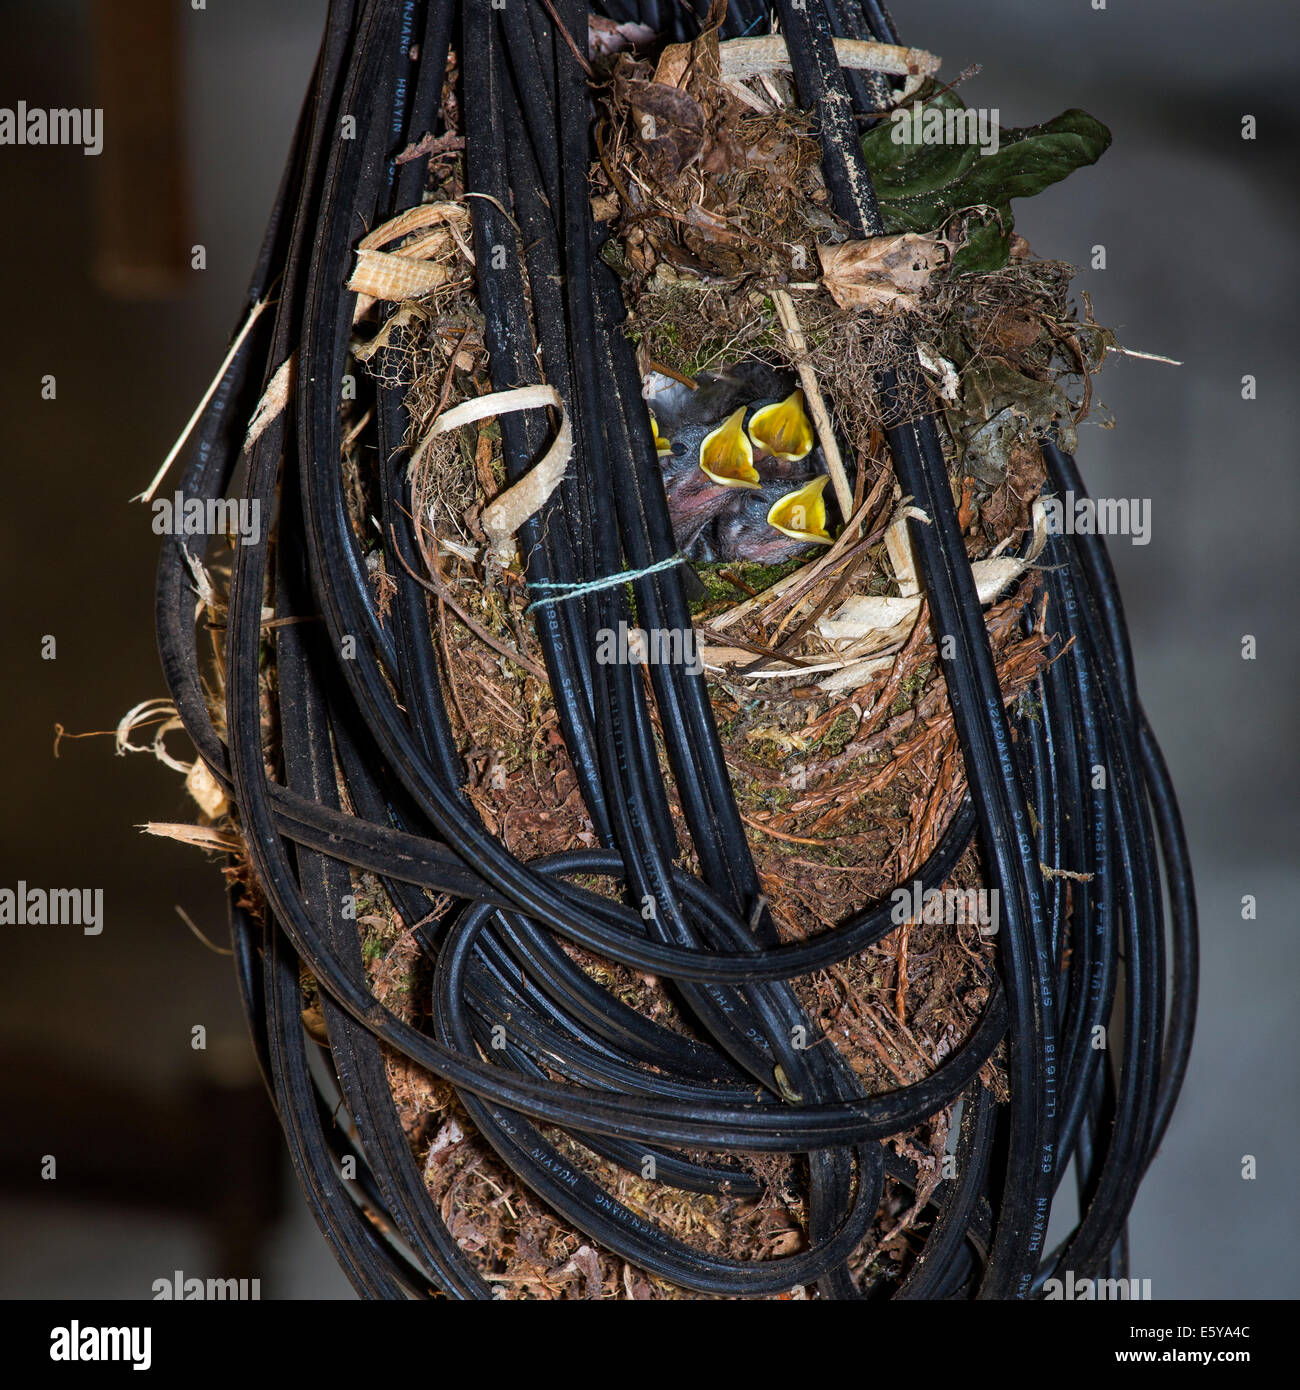 Eurasian Wren (Troglodytes troglodytes) nest with hatchlings made in tangled electric wire in garage of house - Stock Image